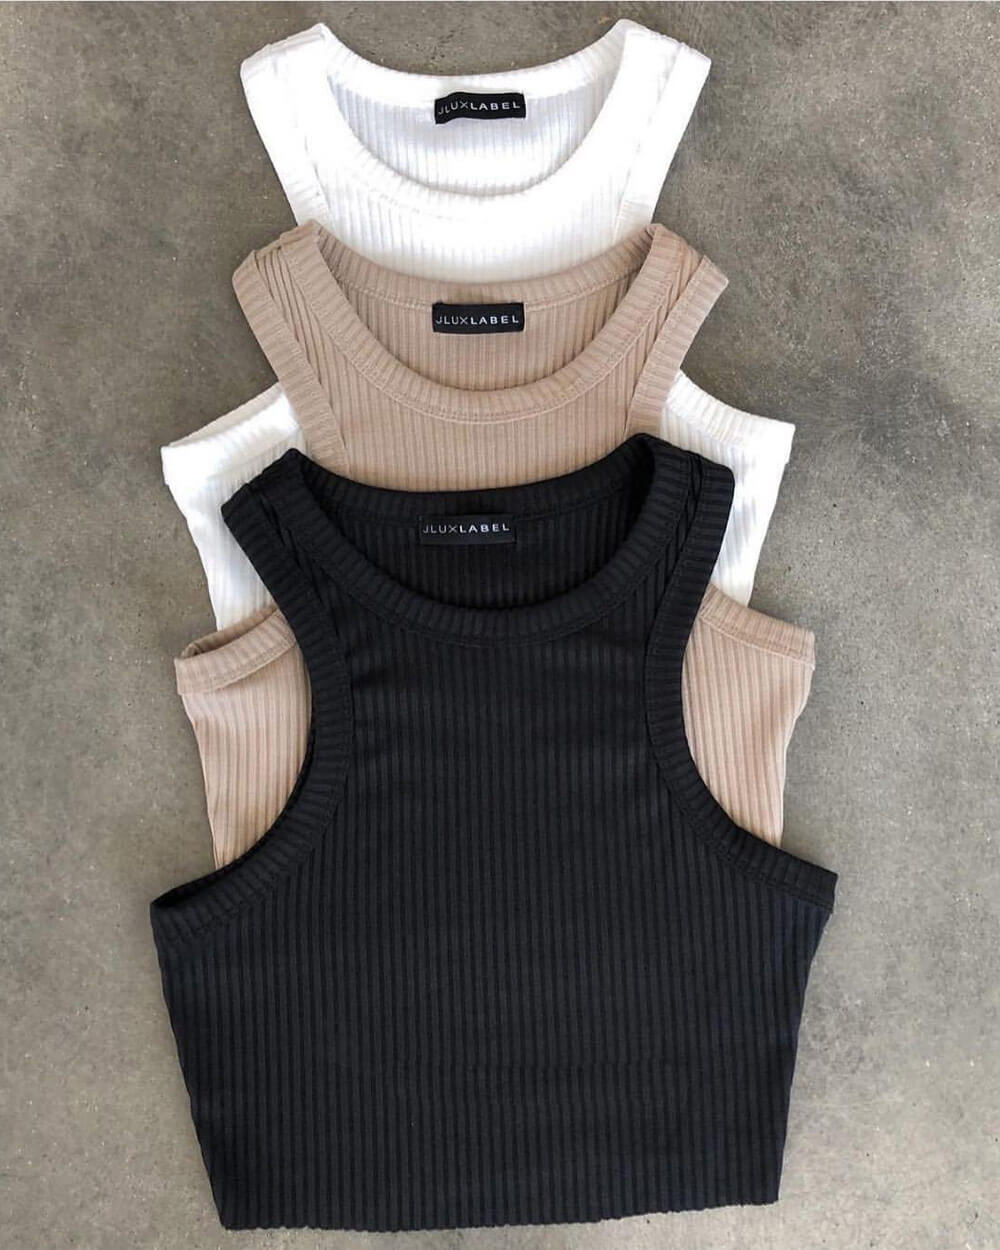 what-to-wear-hiking-Hiking-Tank-Top-Camisole